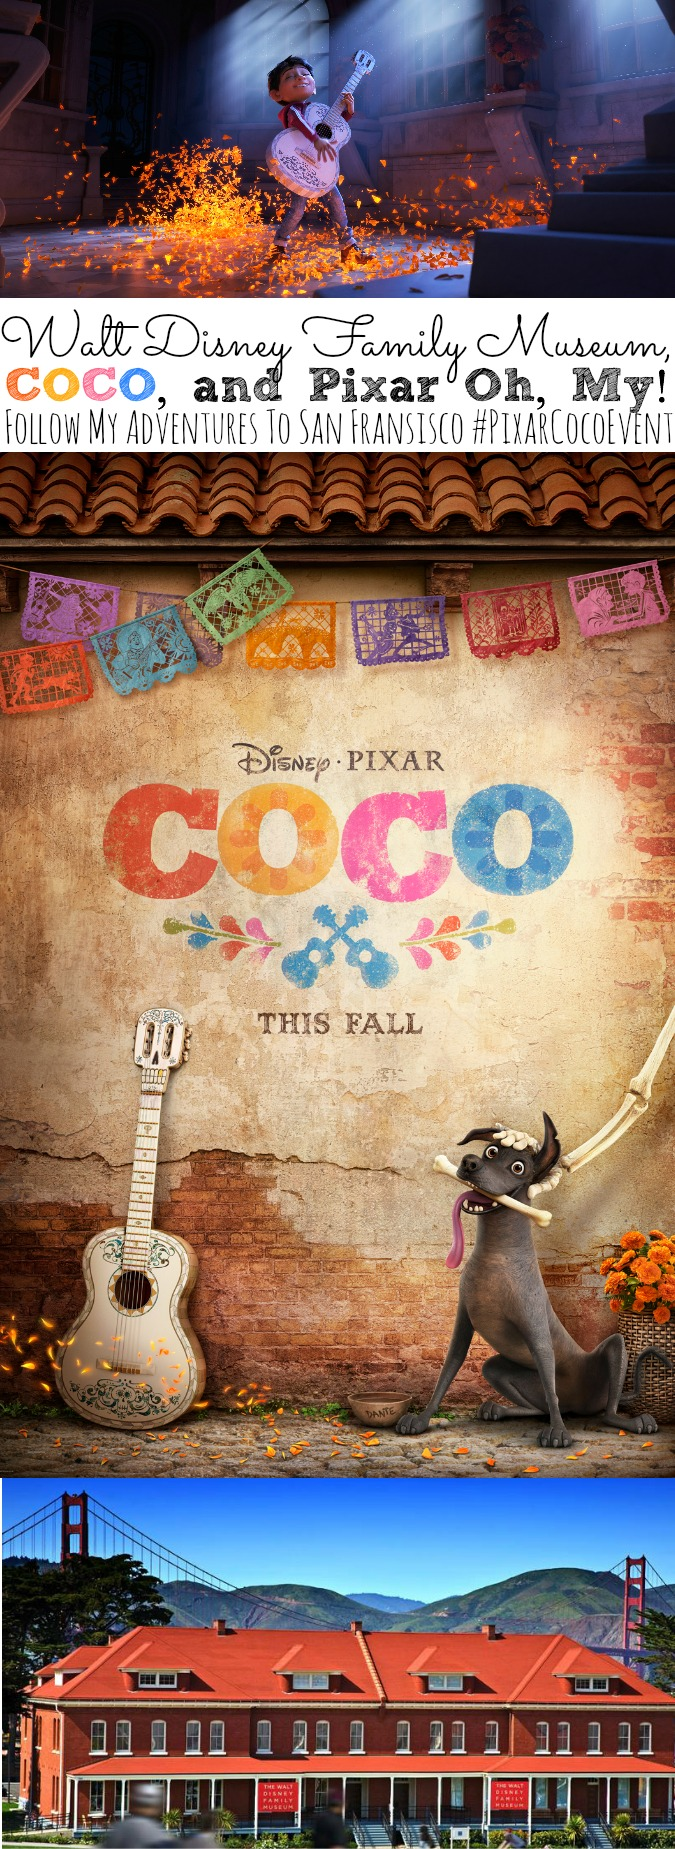 Walt Disney Family Museum, COCO, and Pixar Oh My! | Follow My Adventures To San Francisco #PixarCocoEvent - abccreativelearning.com